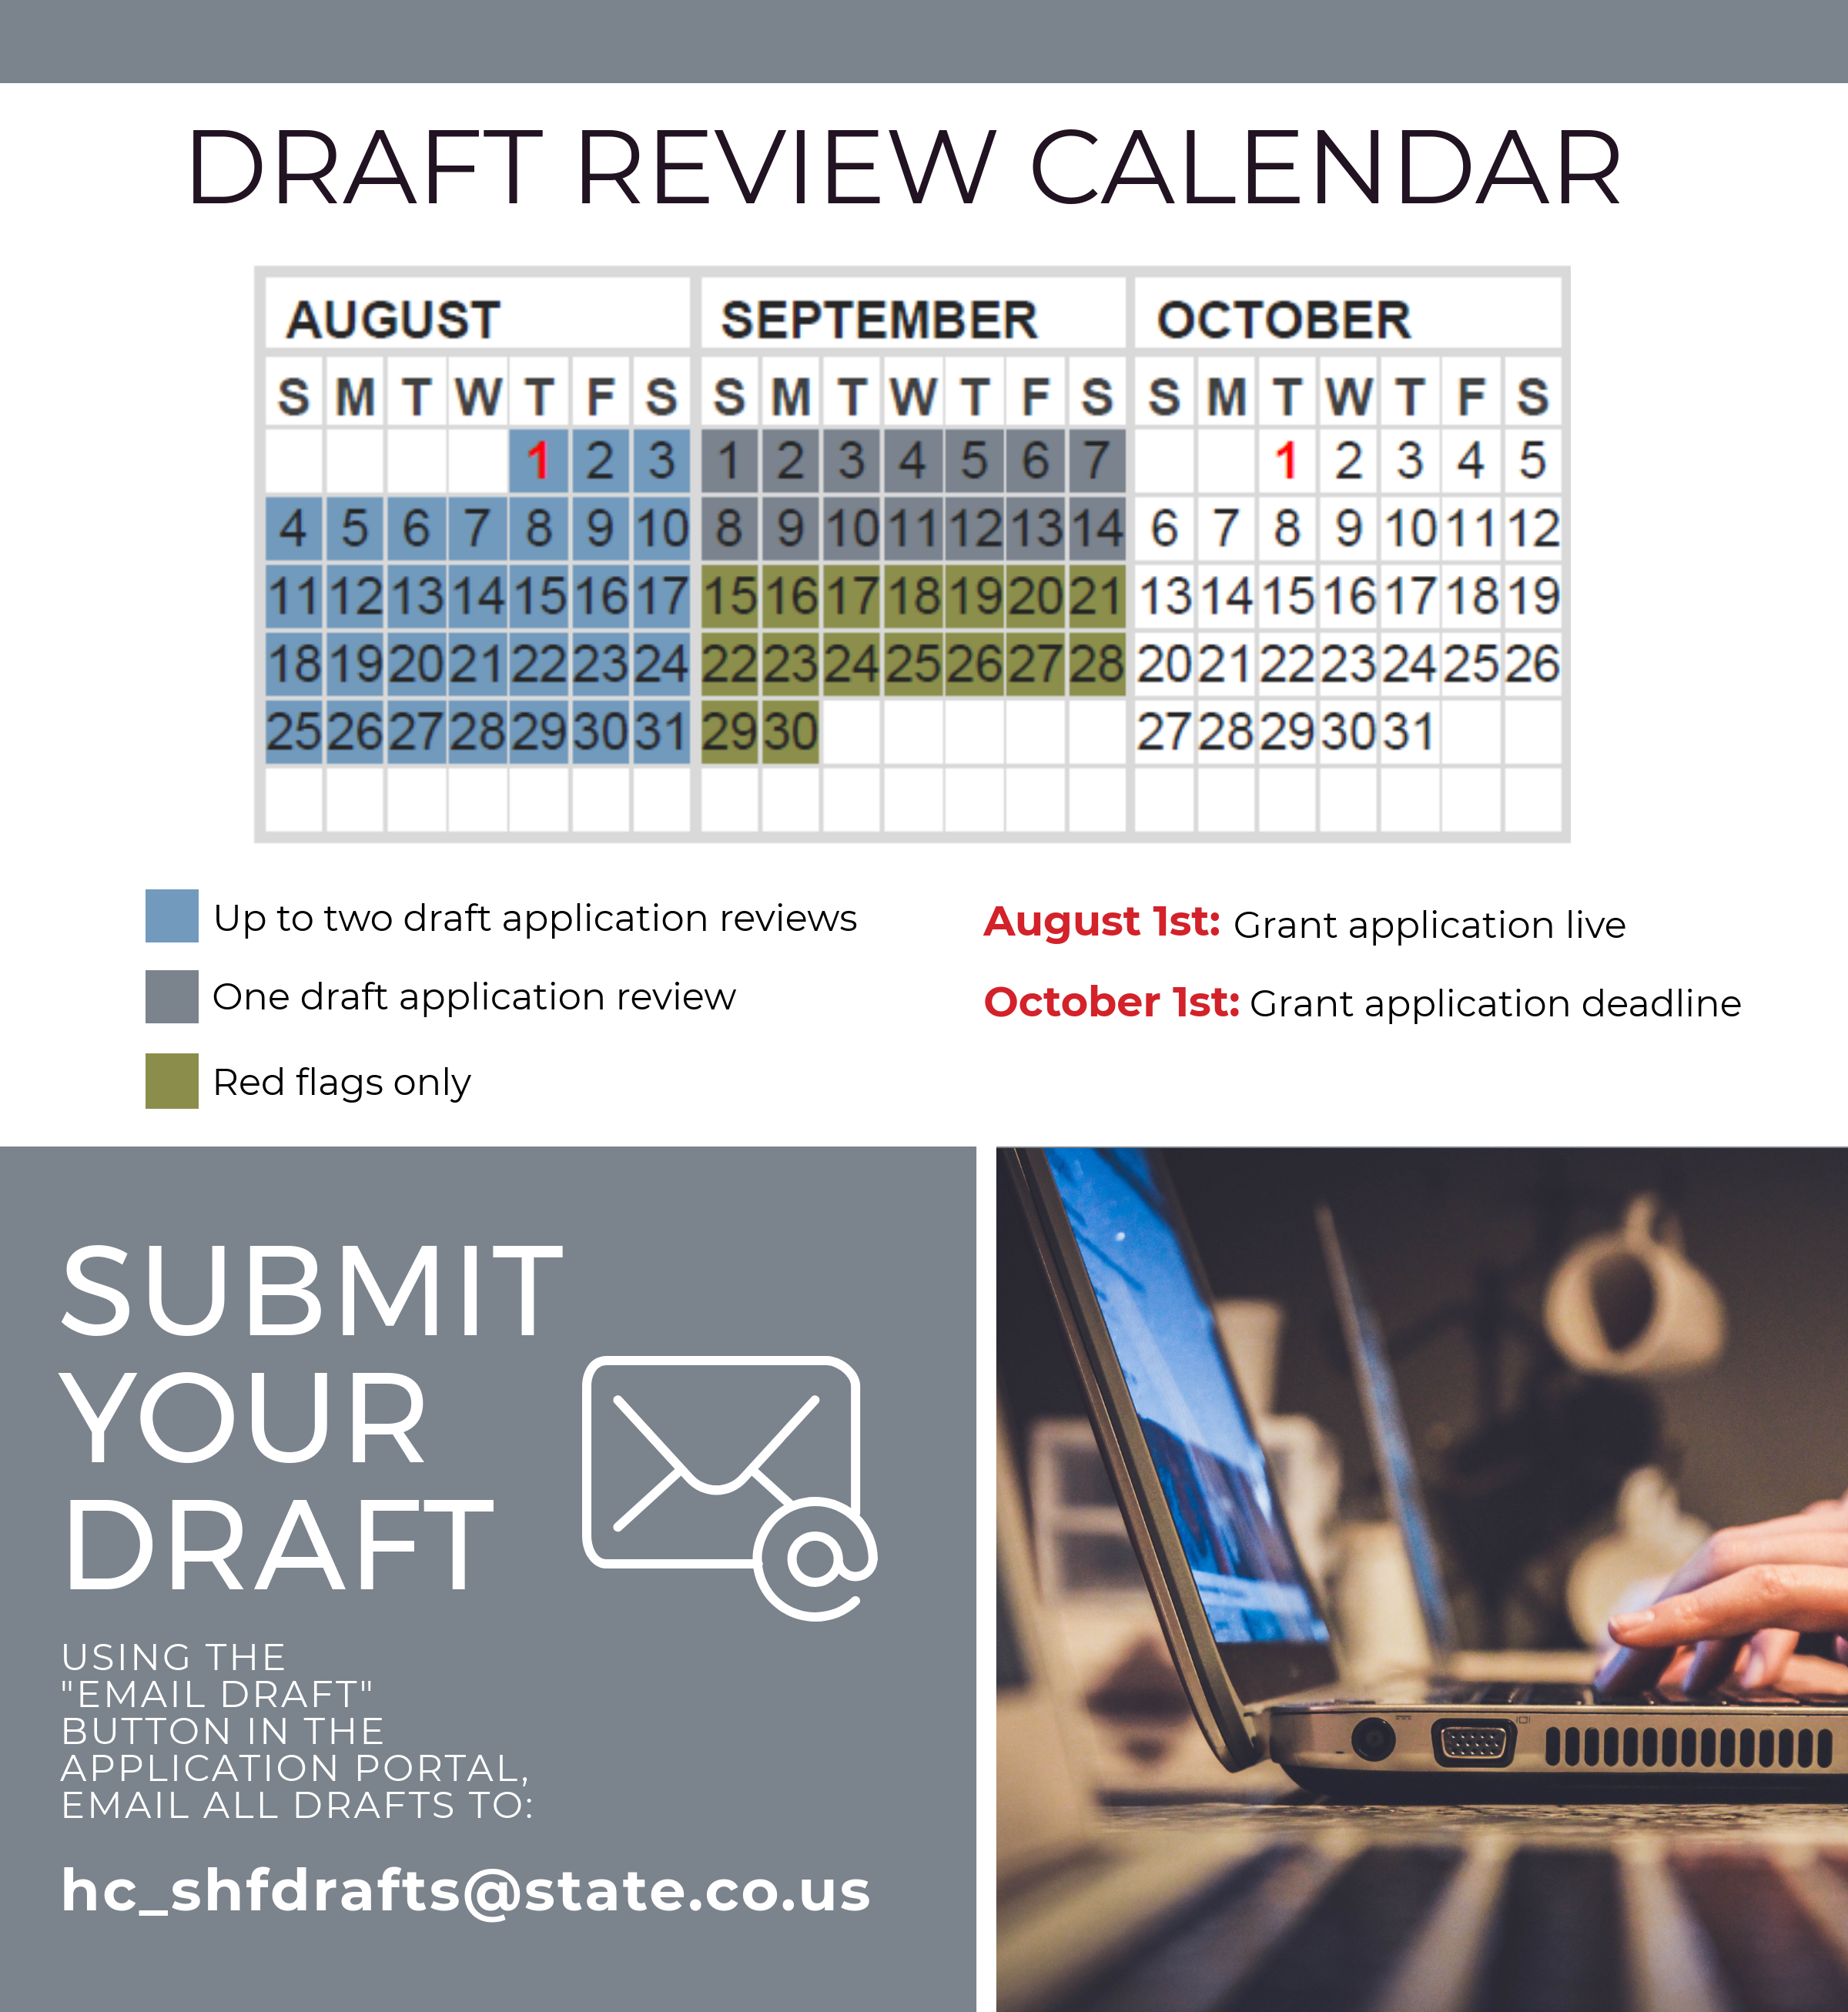 State Historical Draft Review Calendar